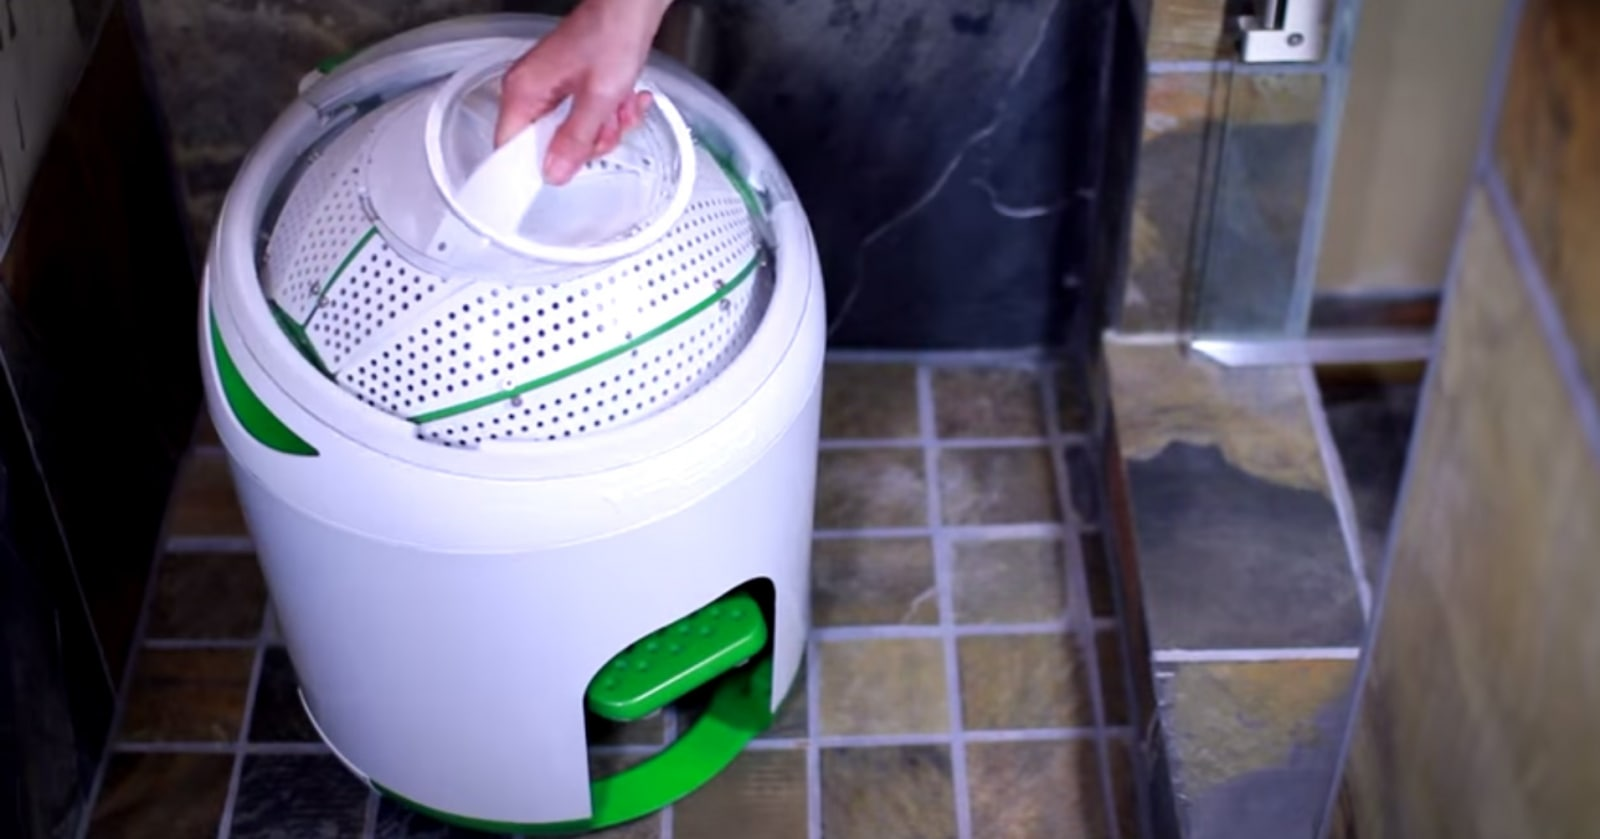 Drumi washing machine by Yirego